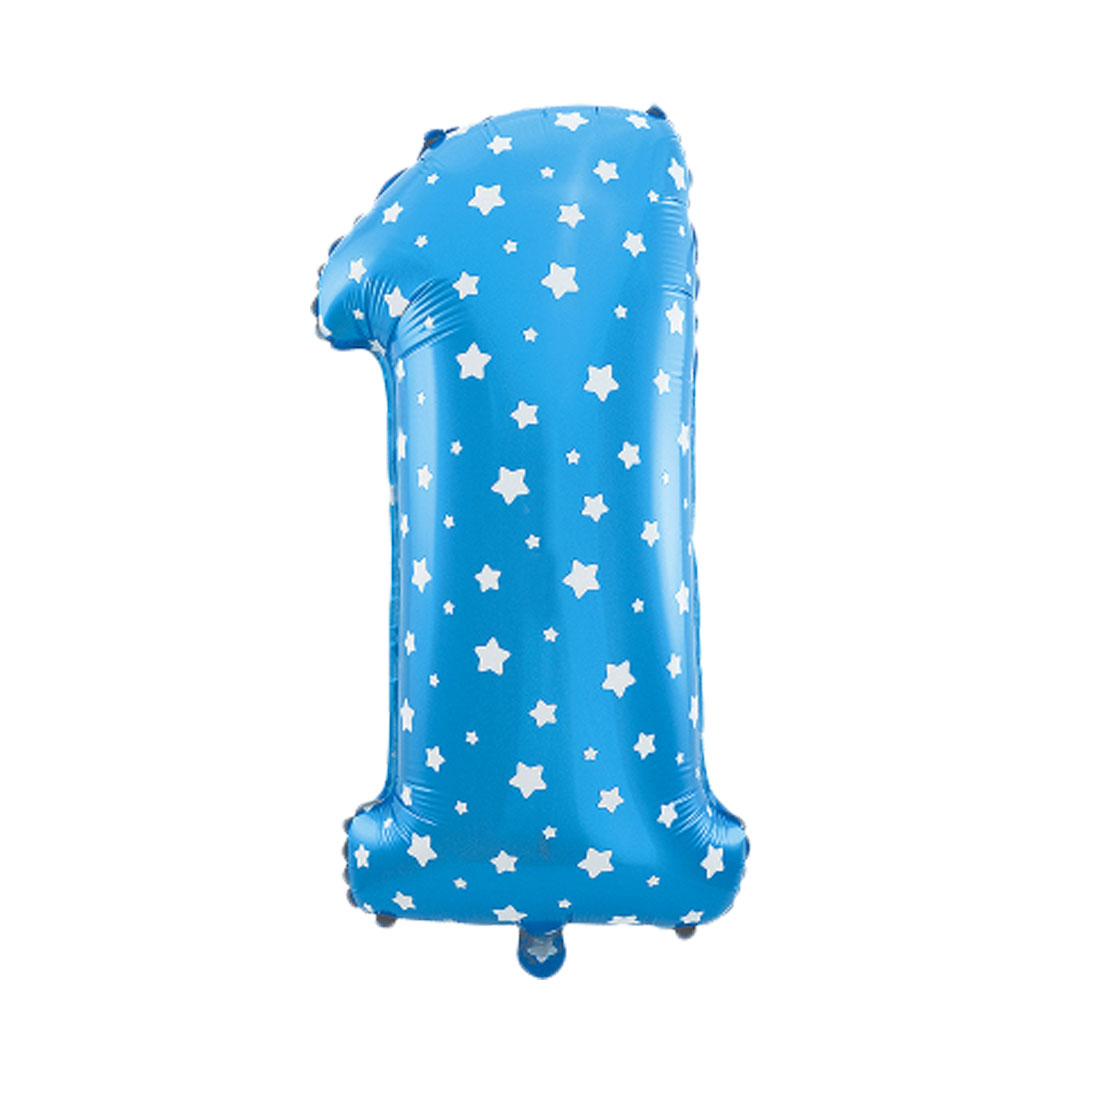 uxcell 16 blue foil number 1 shape balloon helium party birthday wedding anniversary festival decor